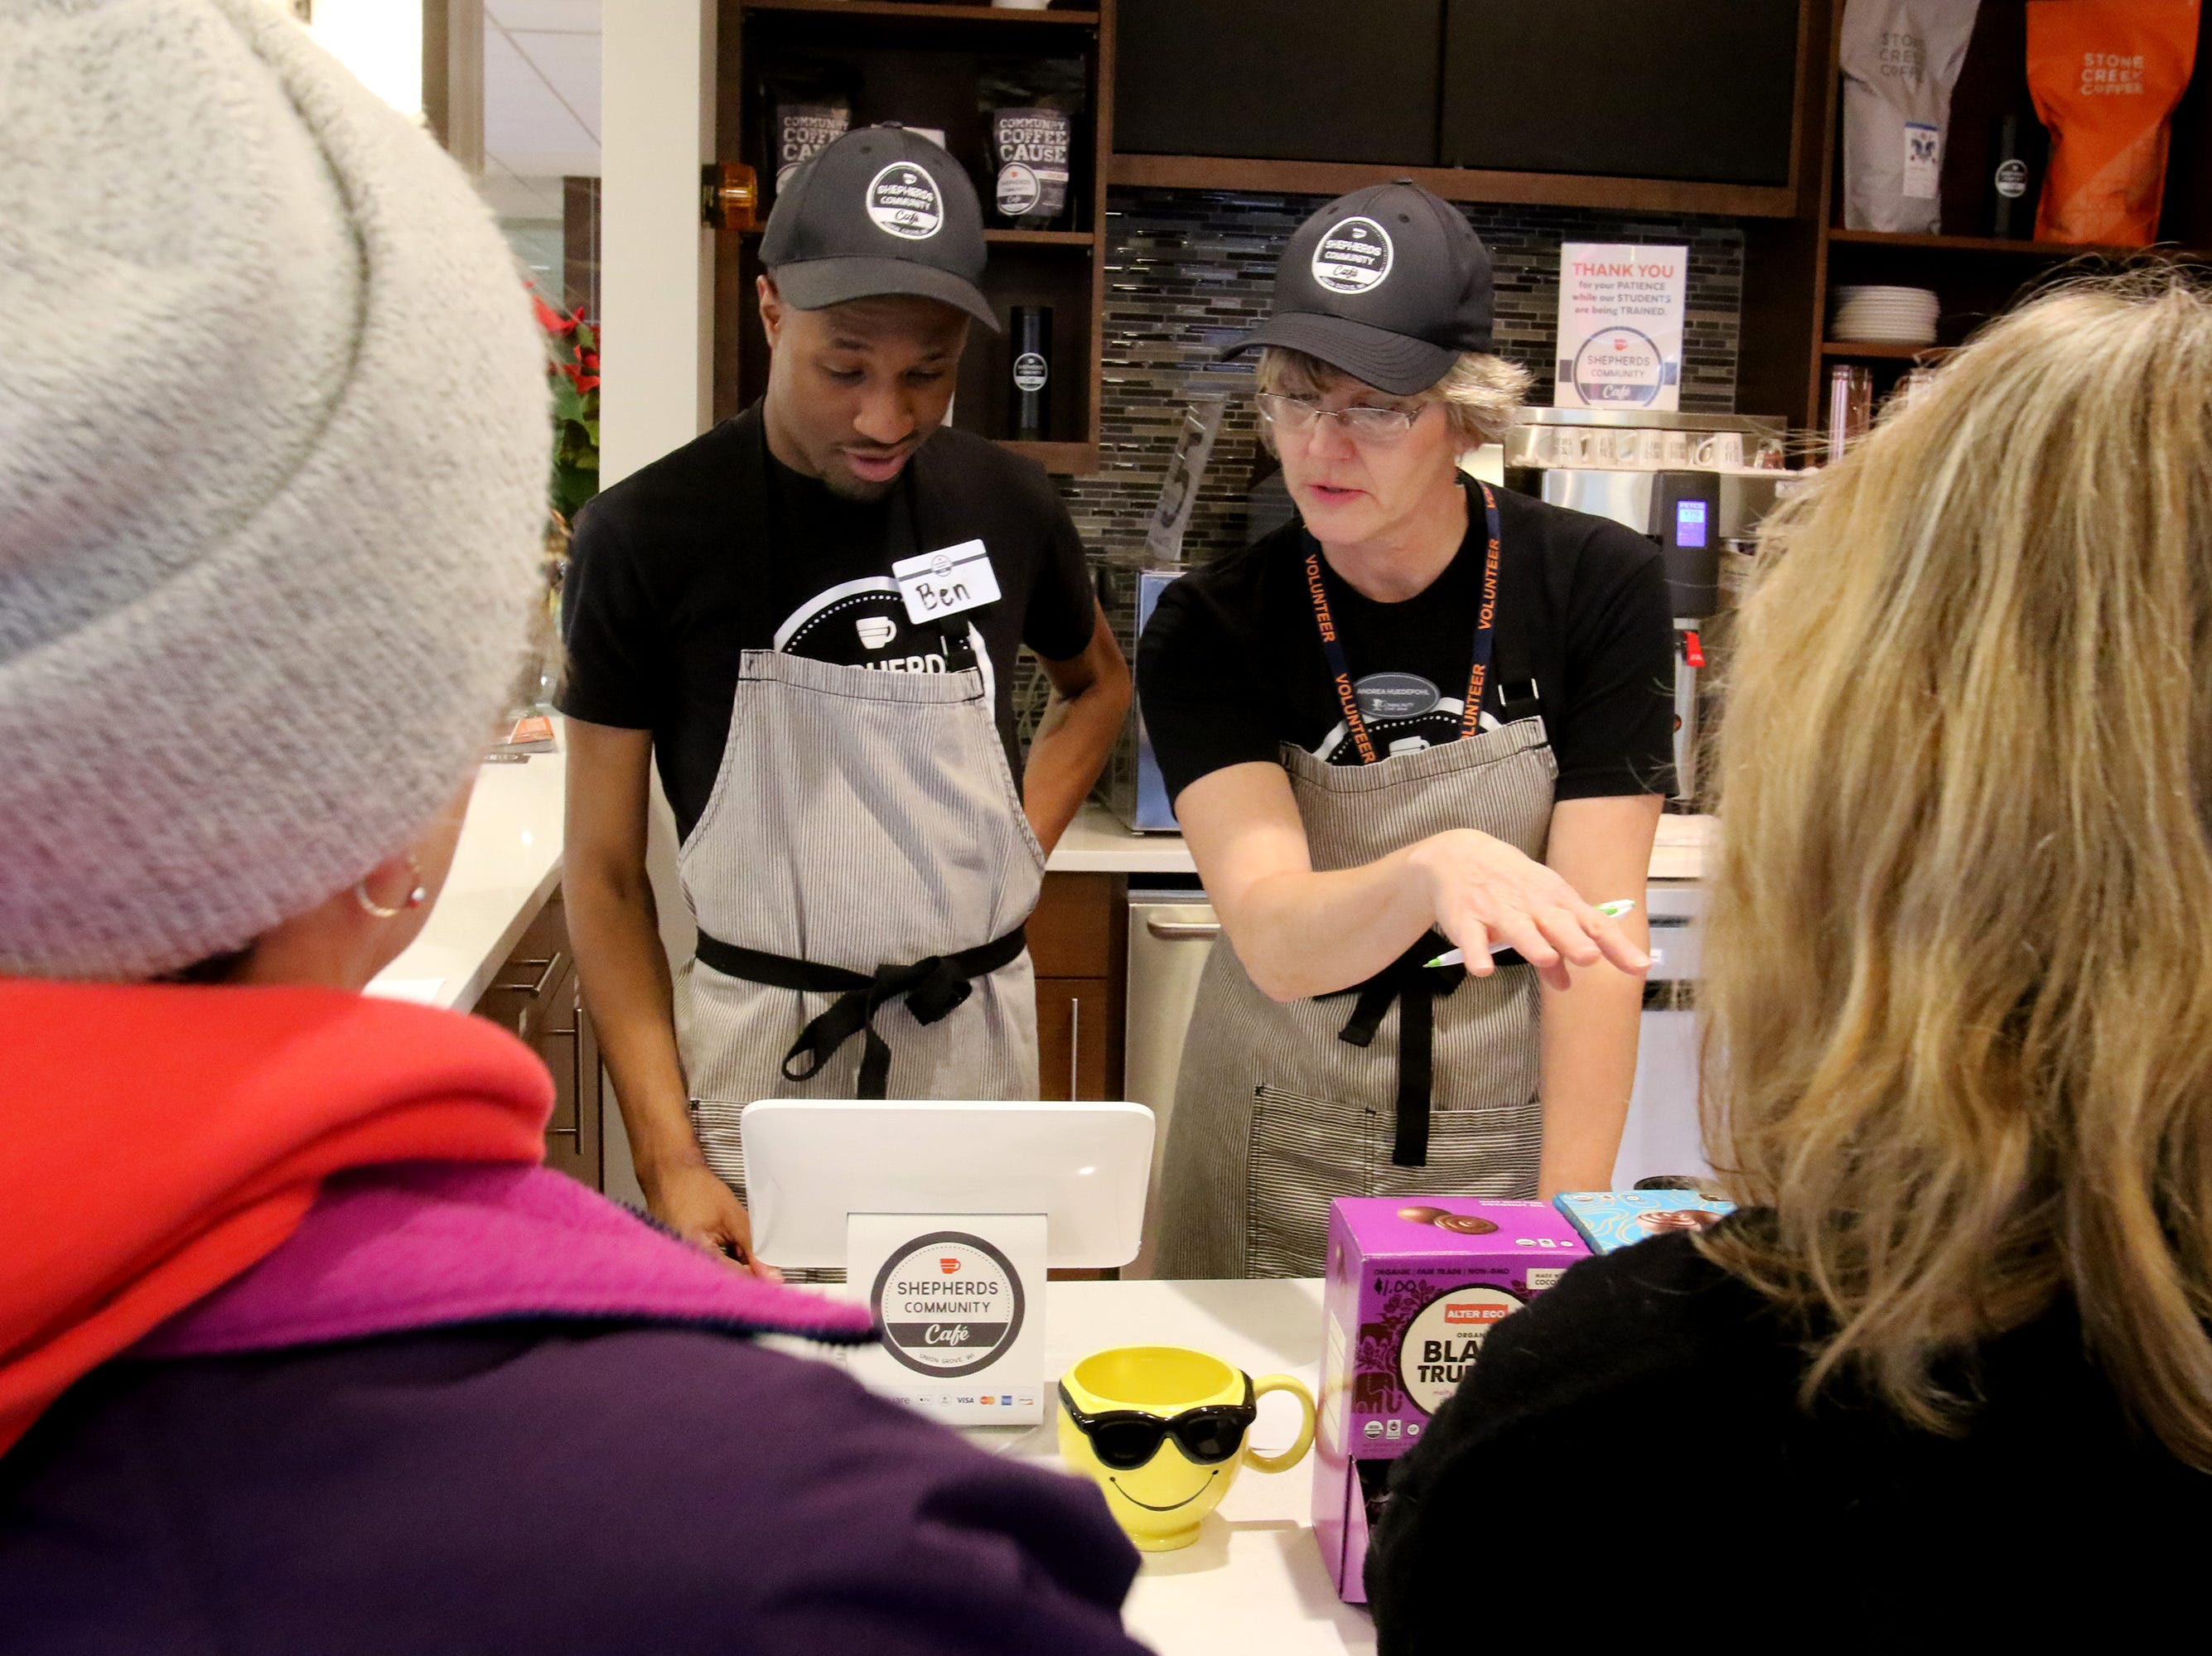 Volunteer Andrea Huedepuhl works with Ben Page on taking customer orders at Shepherds Community Cafe inside Community State Bank in Union Grove on Dec. 20.